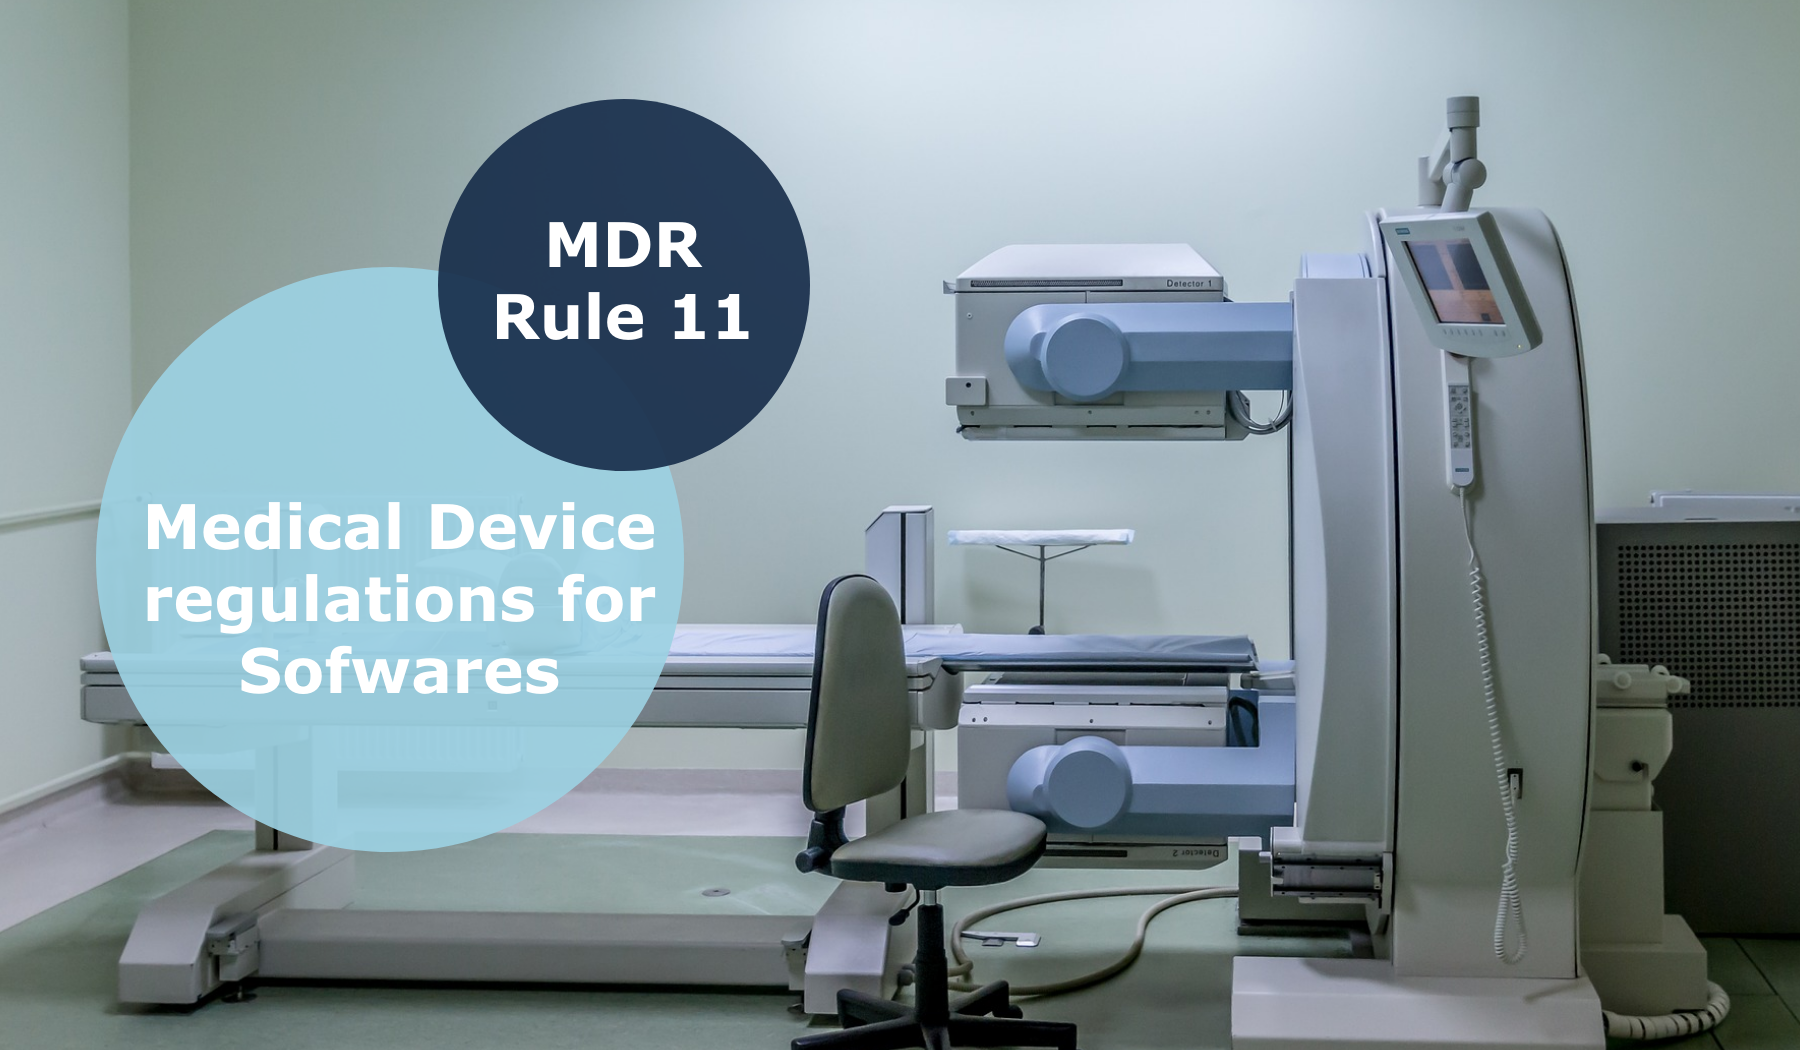 Medical Device Software in the European Market